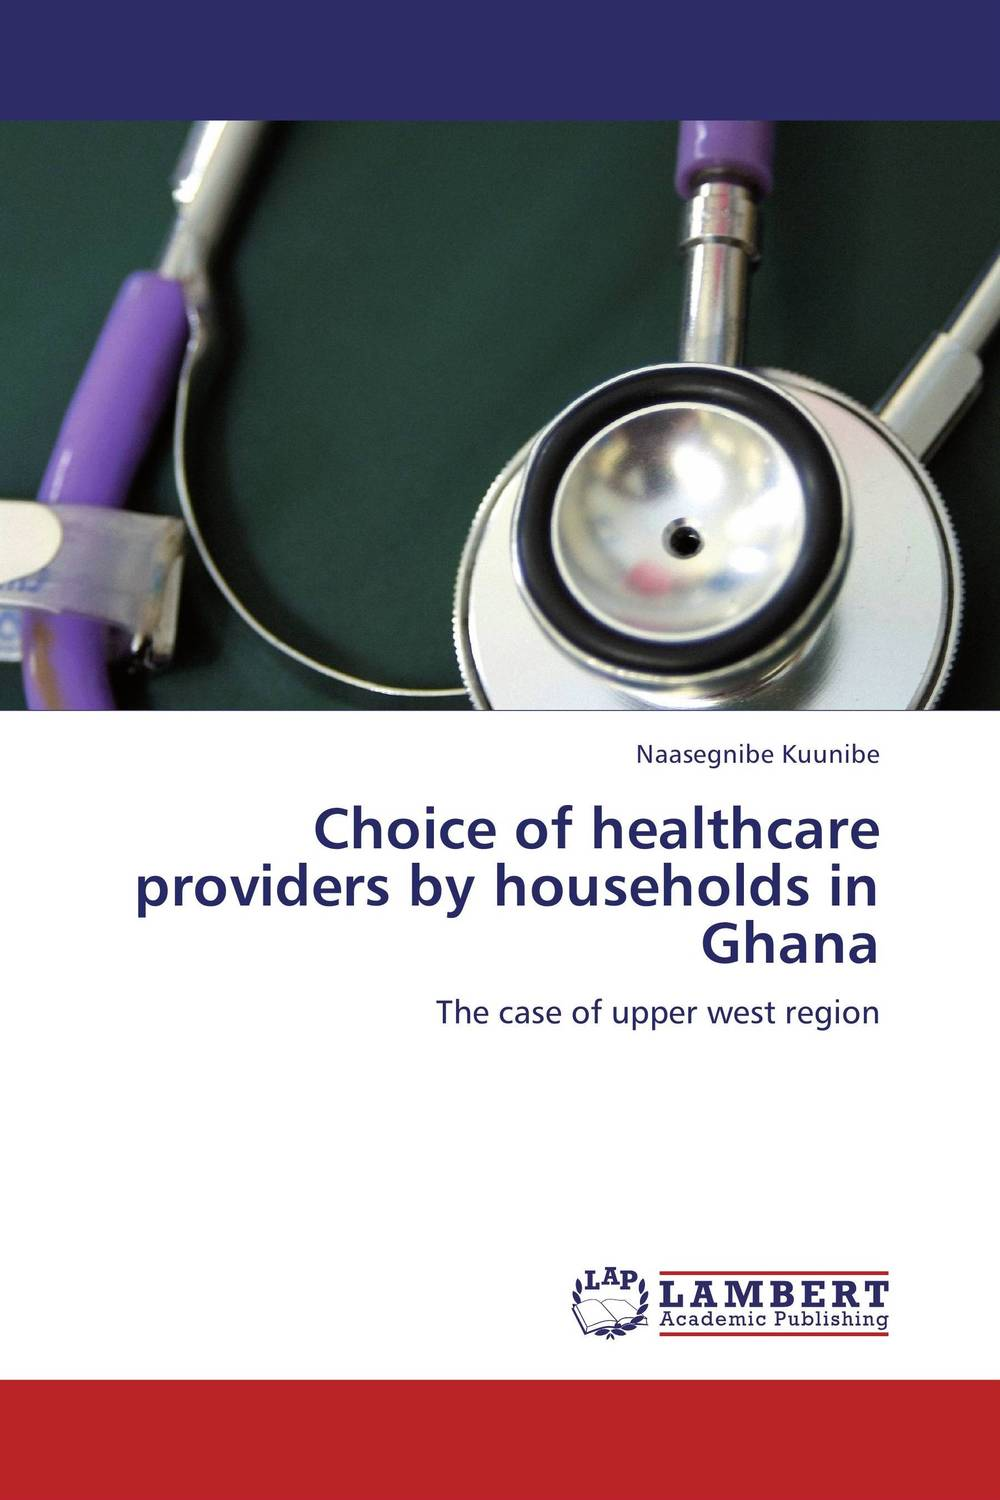 Choice of healthcare providers by households in Ghana choice of healthcare providers by households in ghana